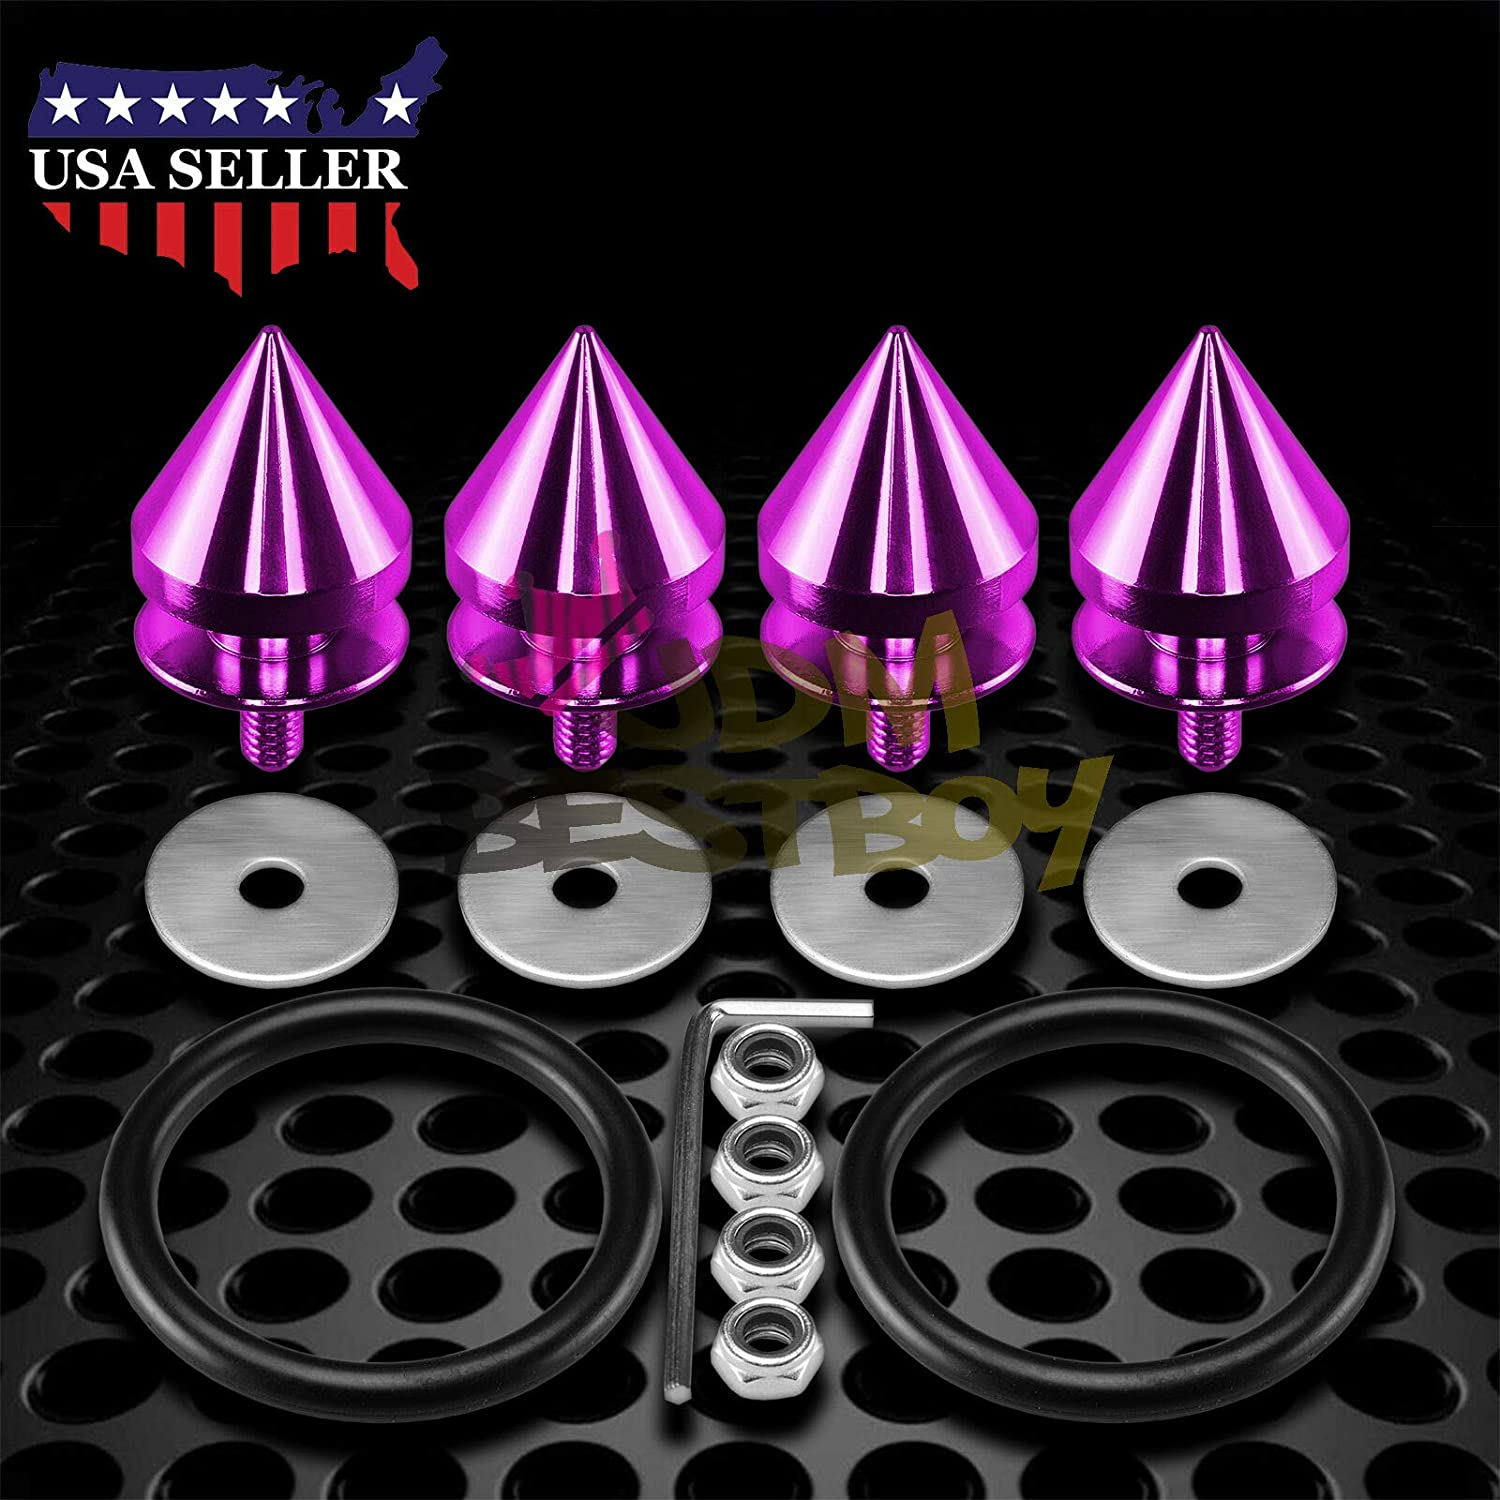 JDMBESTBOY JDM Purple Spiked Quick Release Fasteners for Car Bumpers Trunk Fender Hatch Lids Kit from